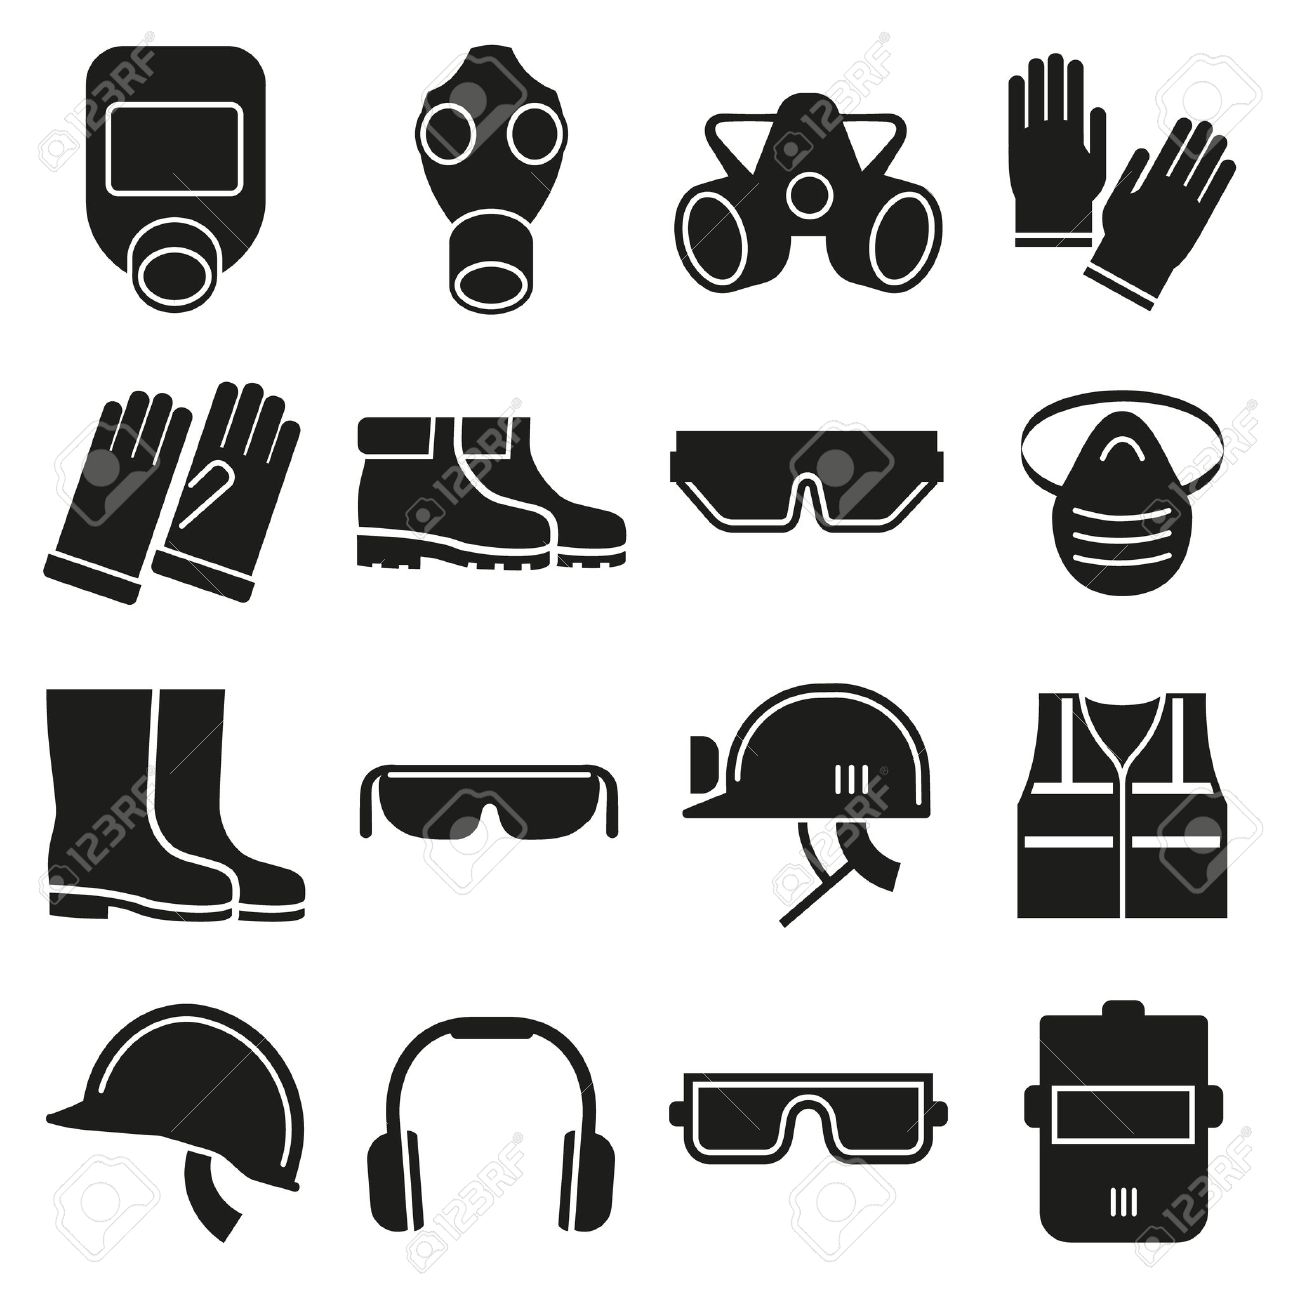 Job safety equipment vector icons set. Safety helmet, equipment for industry job, safety protection mask, safety glove and glasses illustration - 51707032